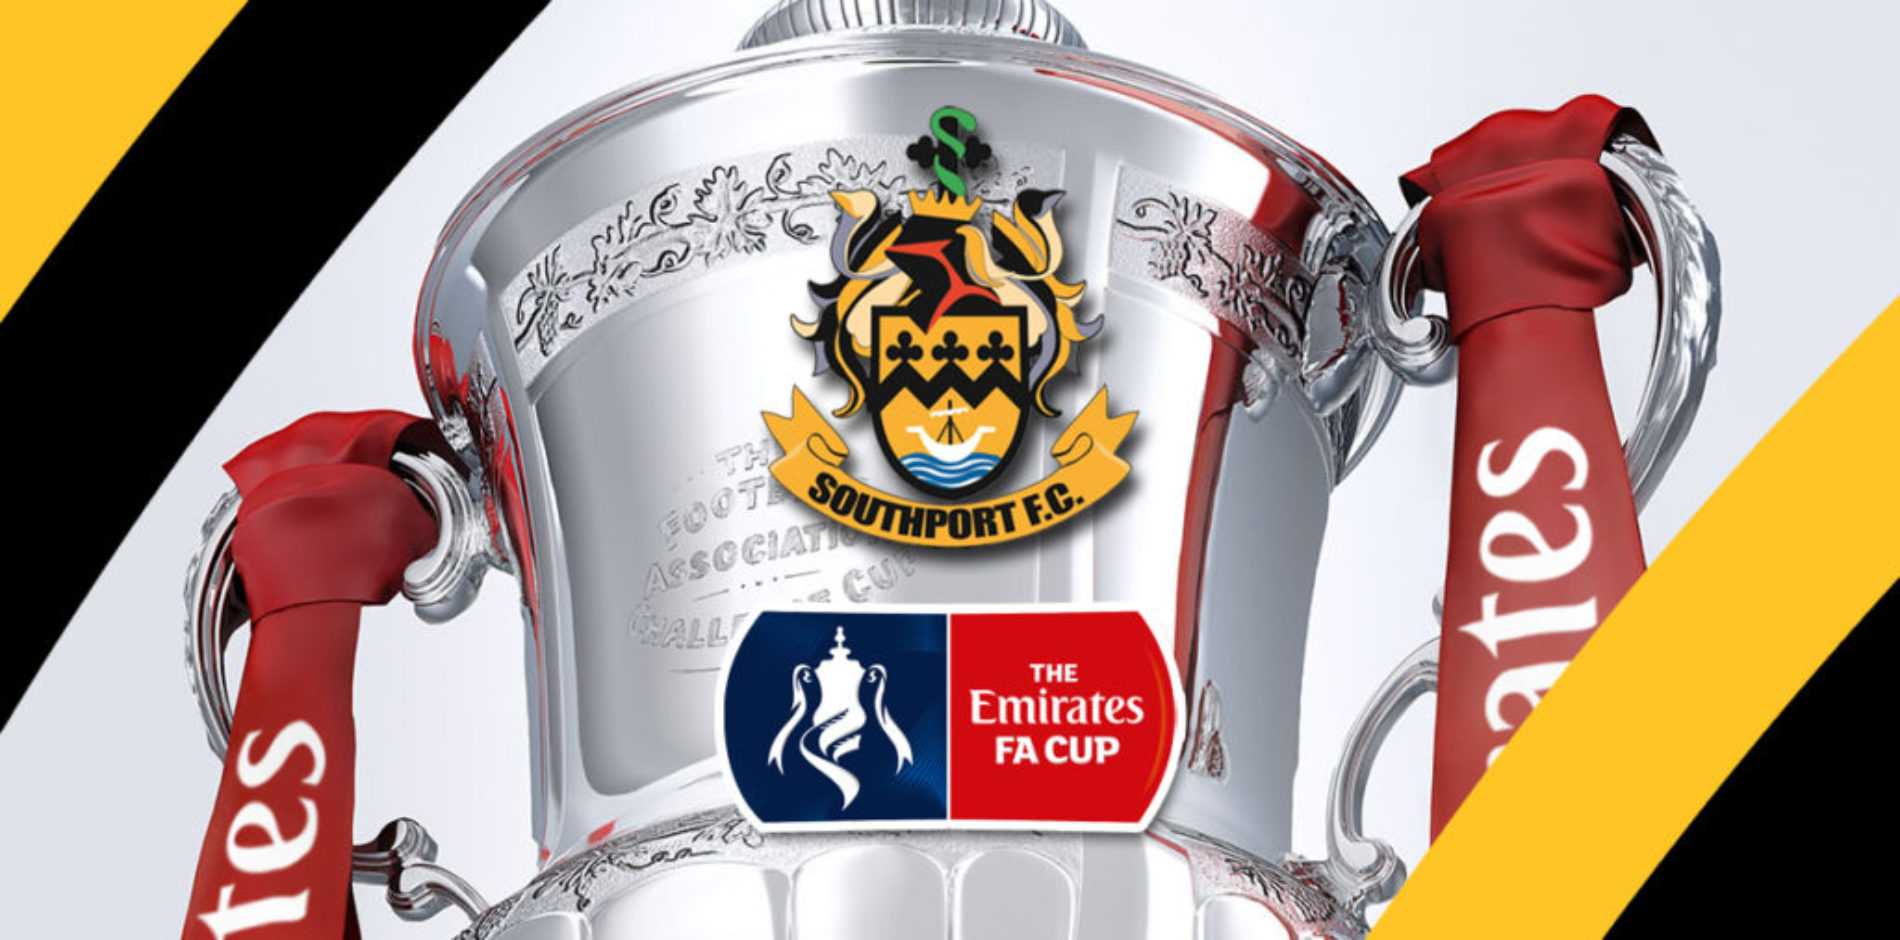 FA CUP  Southport V Fleetwood To Be Broadcast Live On BT Sport  Tie to be played Monday 7th November at 7.45pm    Southport's Emirates FA Cup First Round tie against has been selected for live TV coverage on BT Sport.    To accommodate the coverage – this fixture has been scheduled for Monday 7th...